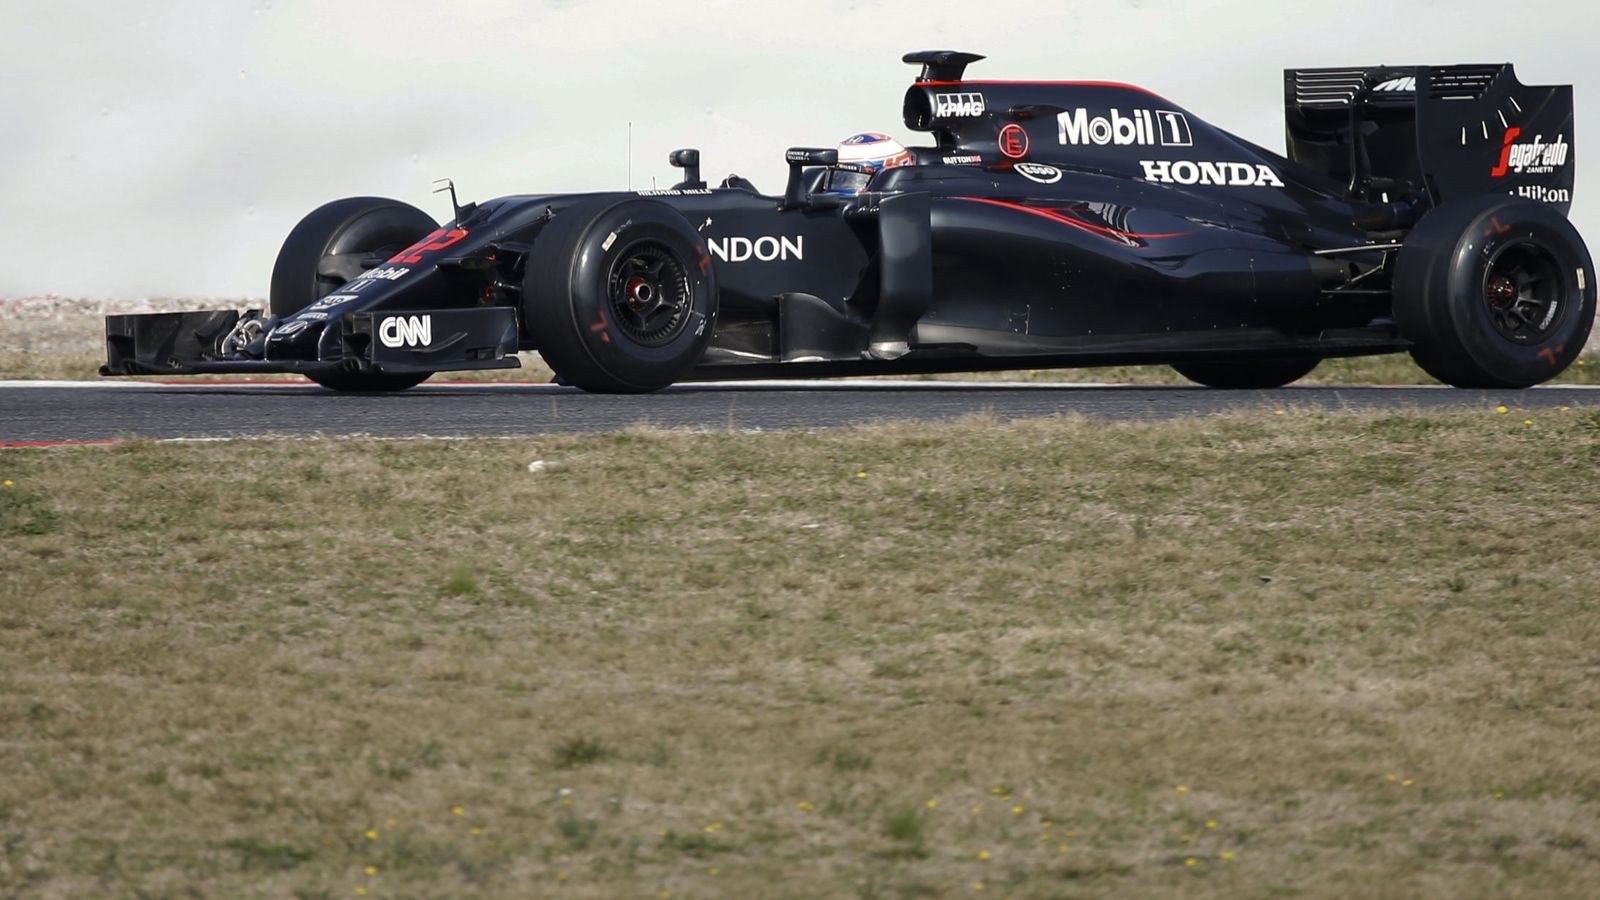 Foto: Mclaren formula one driver button of britain speeds his car during the third testing session ahead the upcoming season at the circuit barcelona-catalunya in montmelo